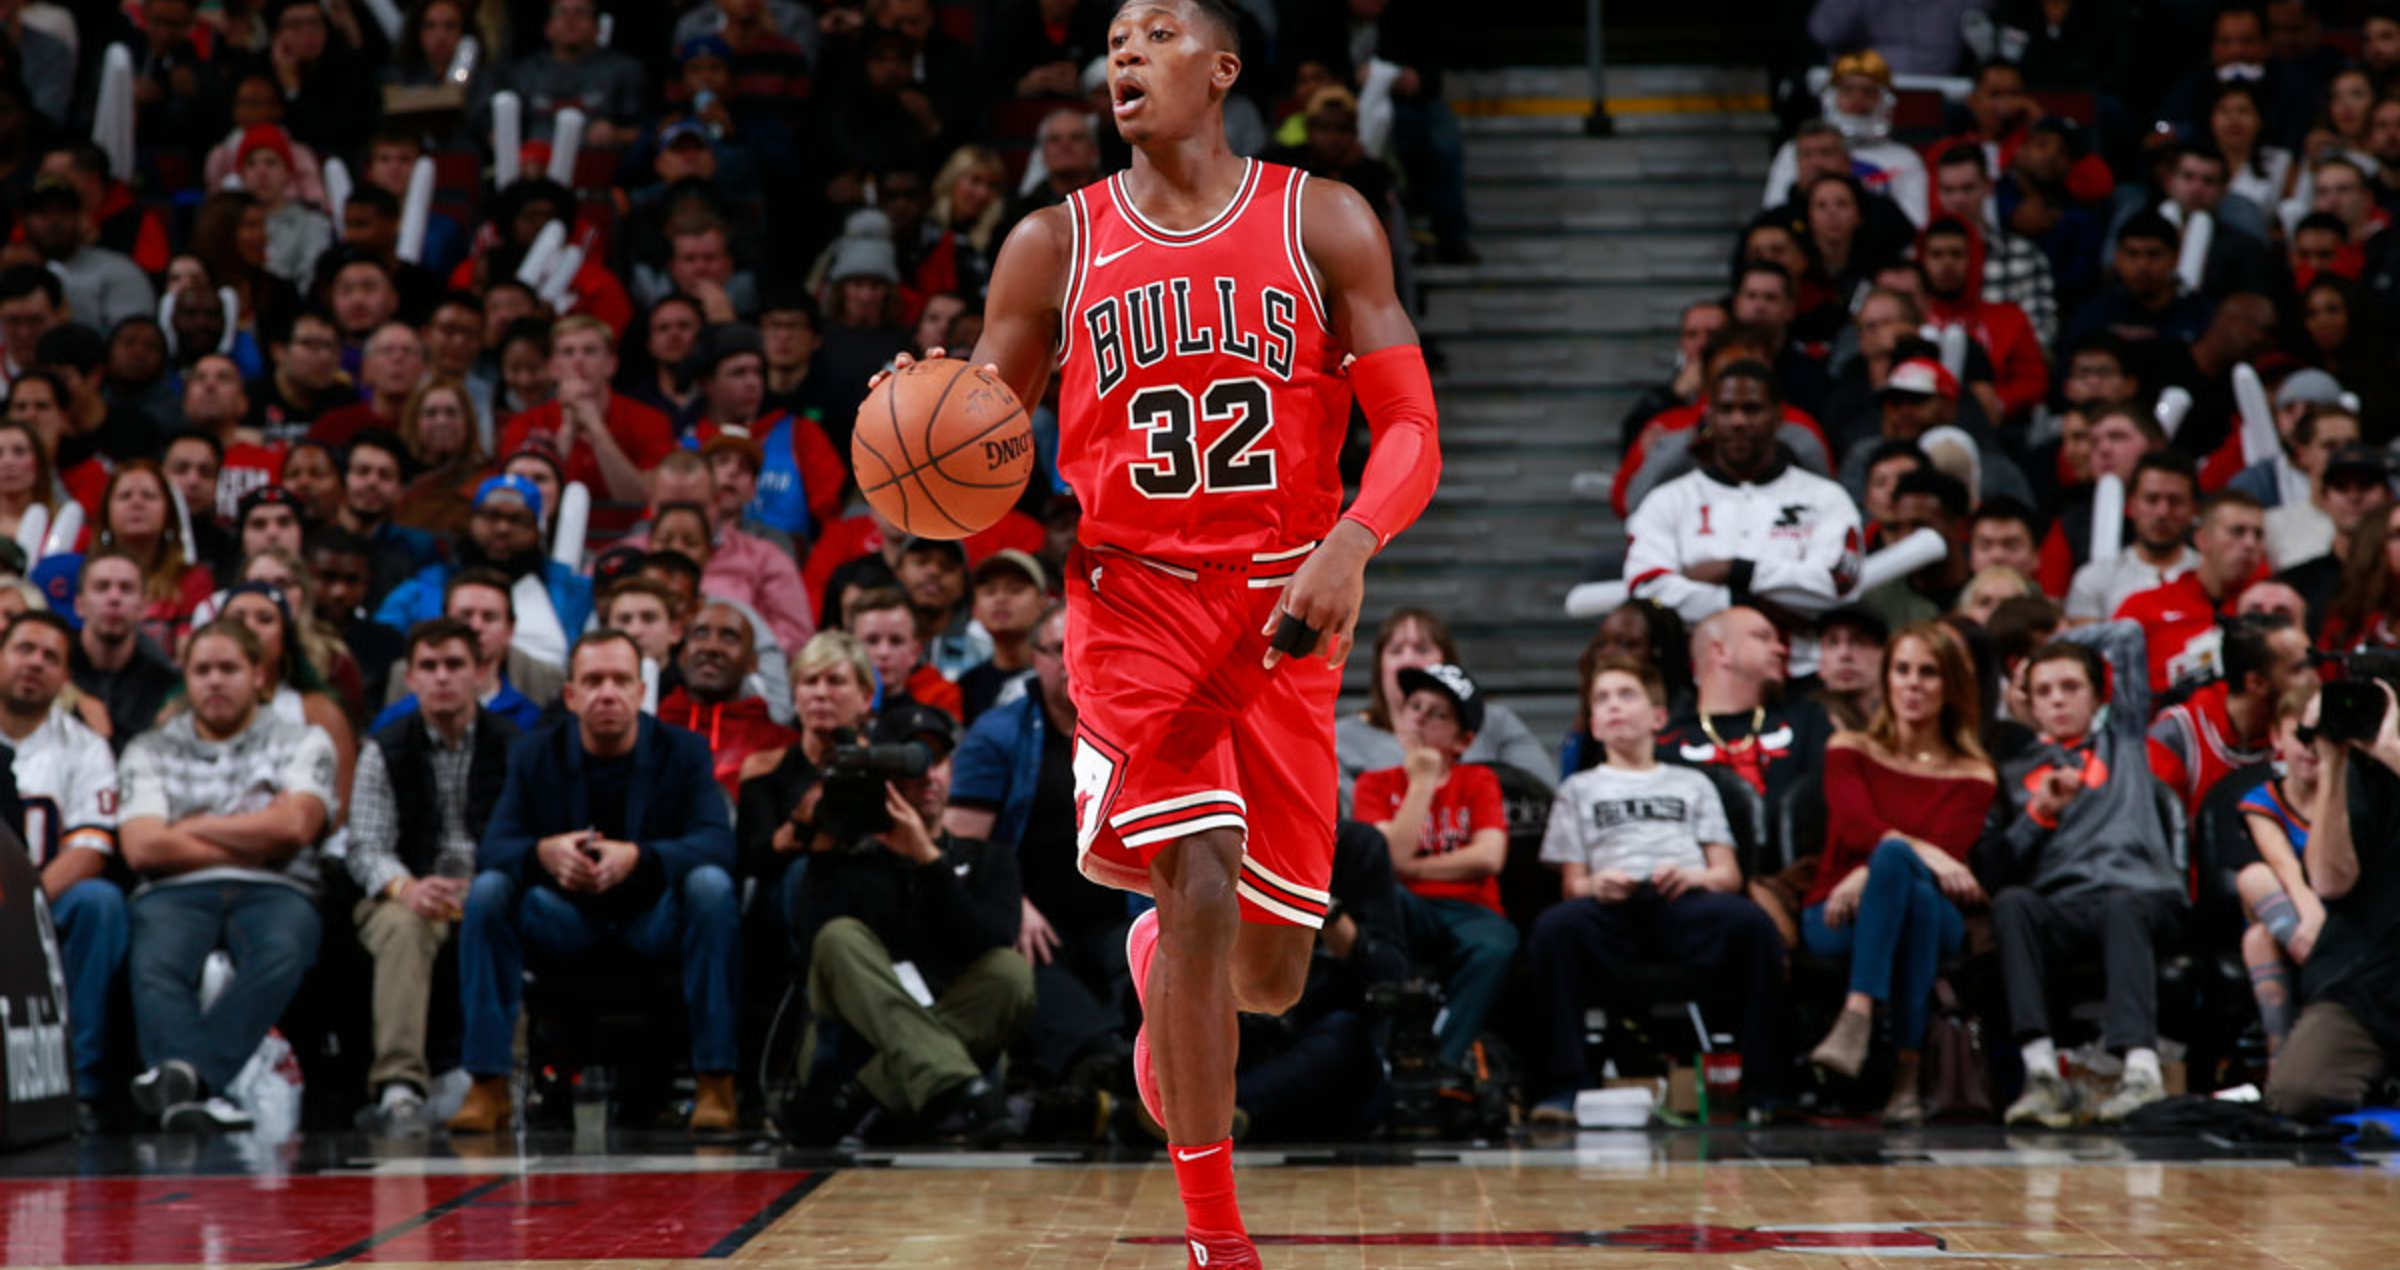 Kris Dunn #32 of the Chicago Bulls handles the ball against the Oklahoma City Thunder on October 28, 2017 at the United Center in Chicago, Illinois.